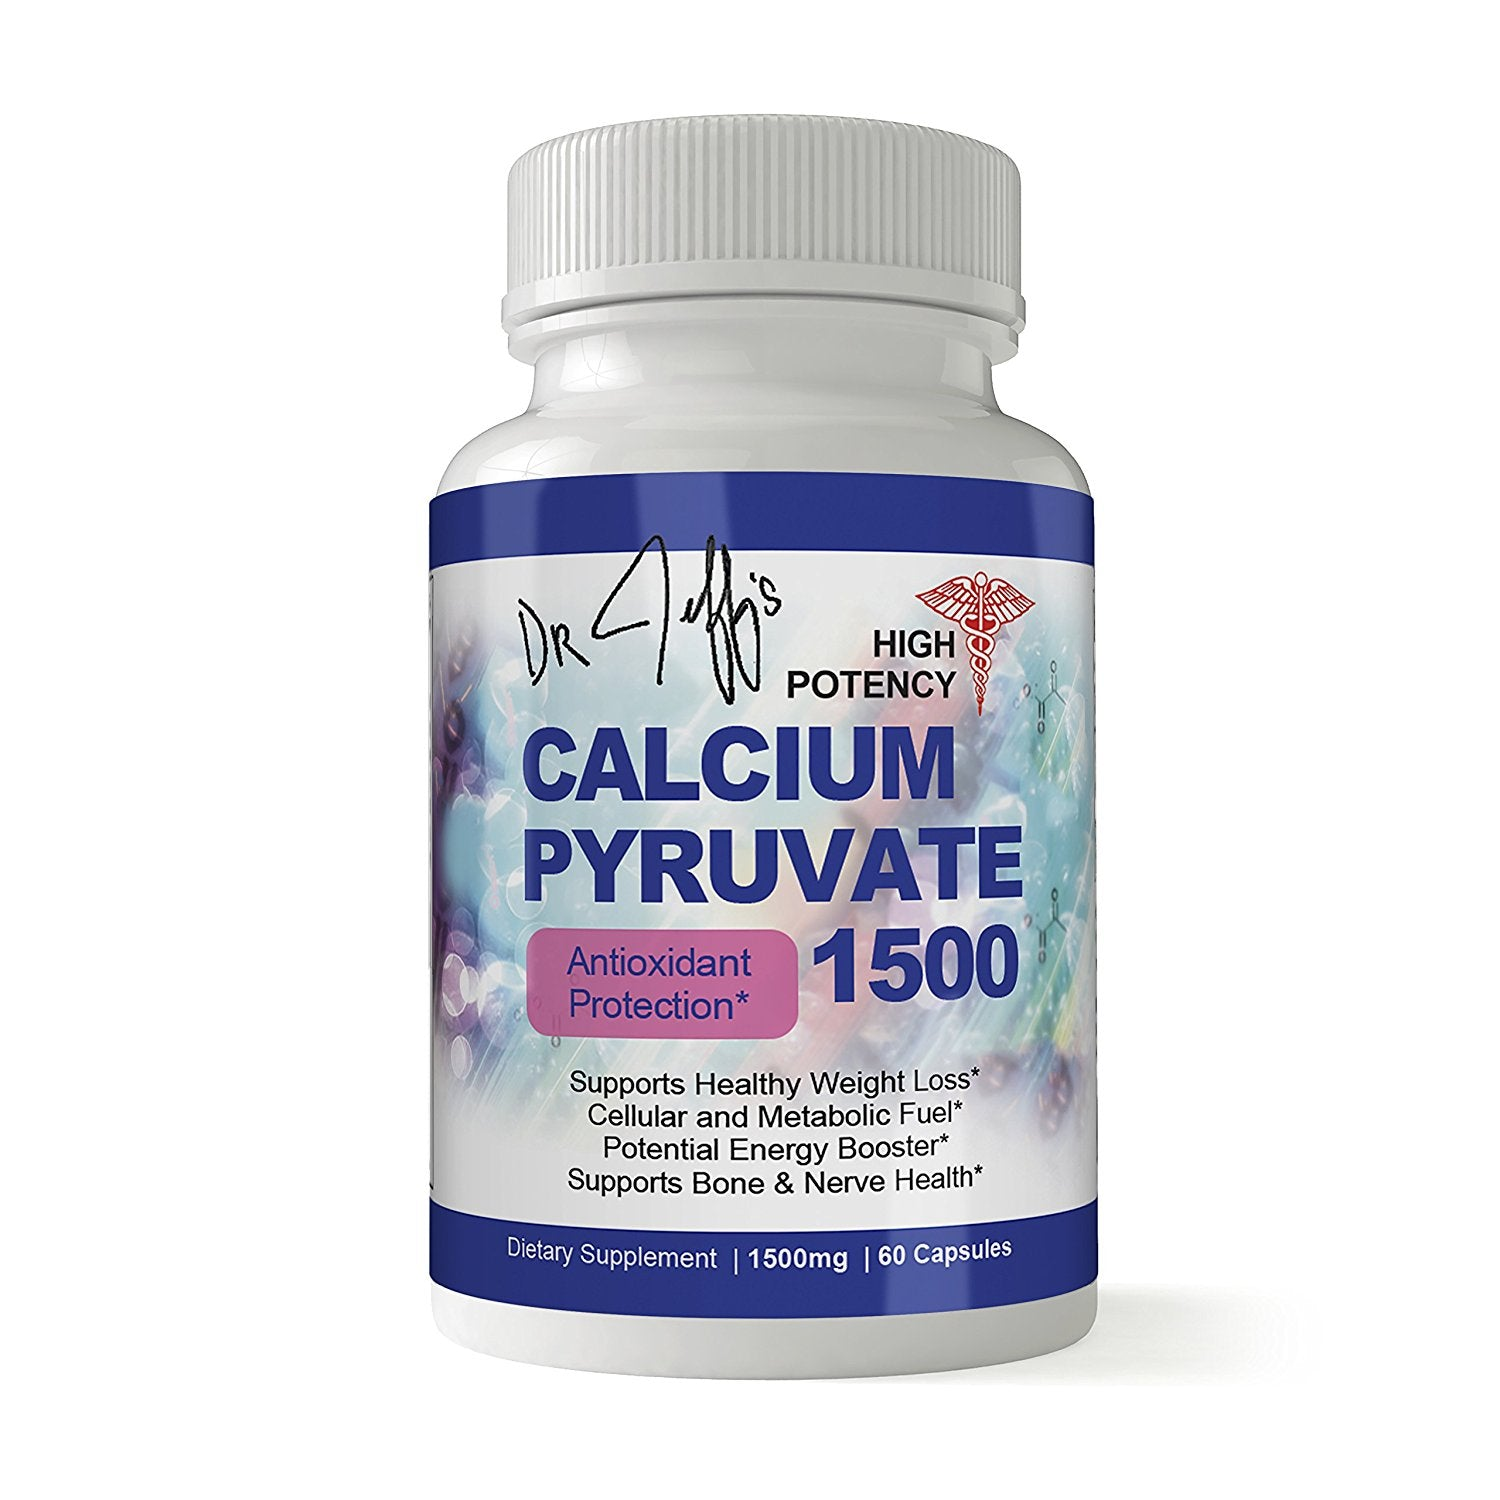 Dr. Jeff's High Potency Calcium Pyruvate 1500mg Daily Antioxidant Formula (60 Capsules)